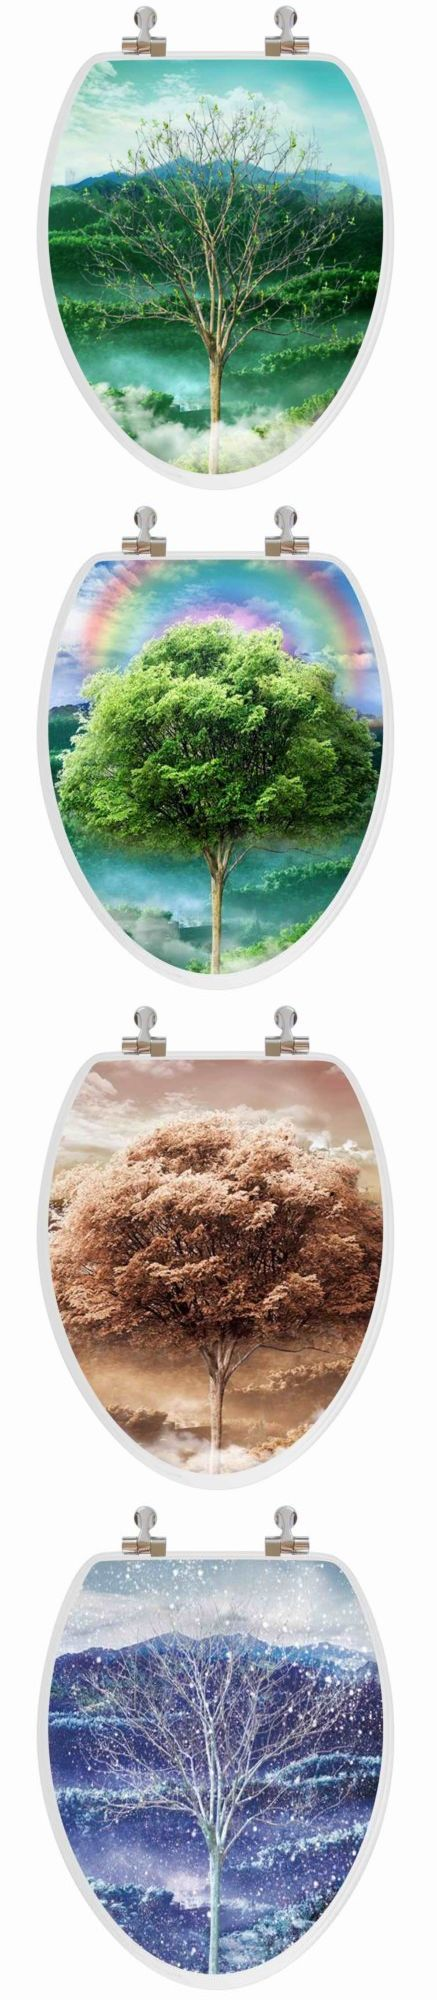 Toilet Seats 37637: Elongated Toilet Seat + Lid Cover Wood Trees 3D Changing Seasons Unique Decor -> BUY IT NOW ONLY: $69.99 on eBay!